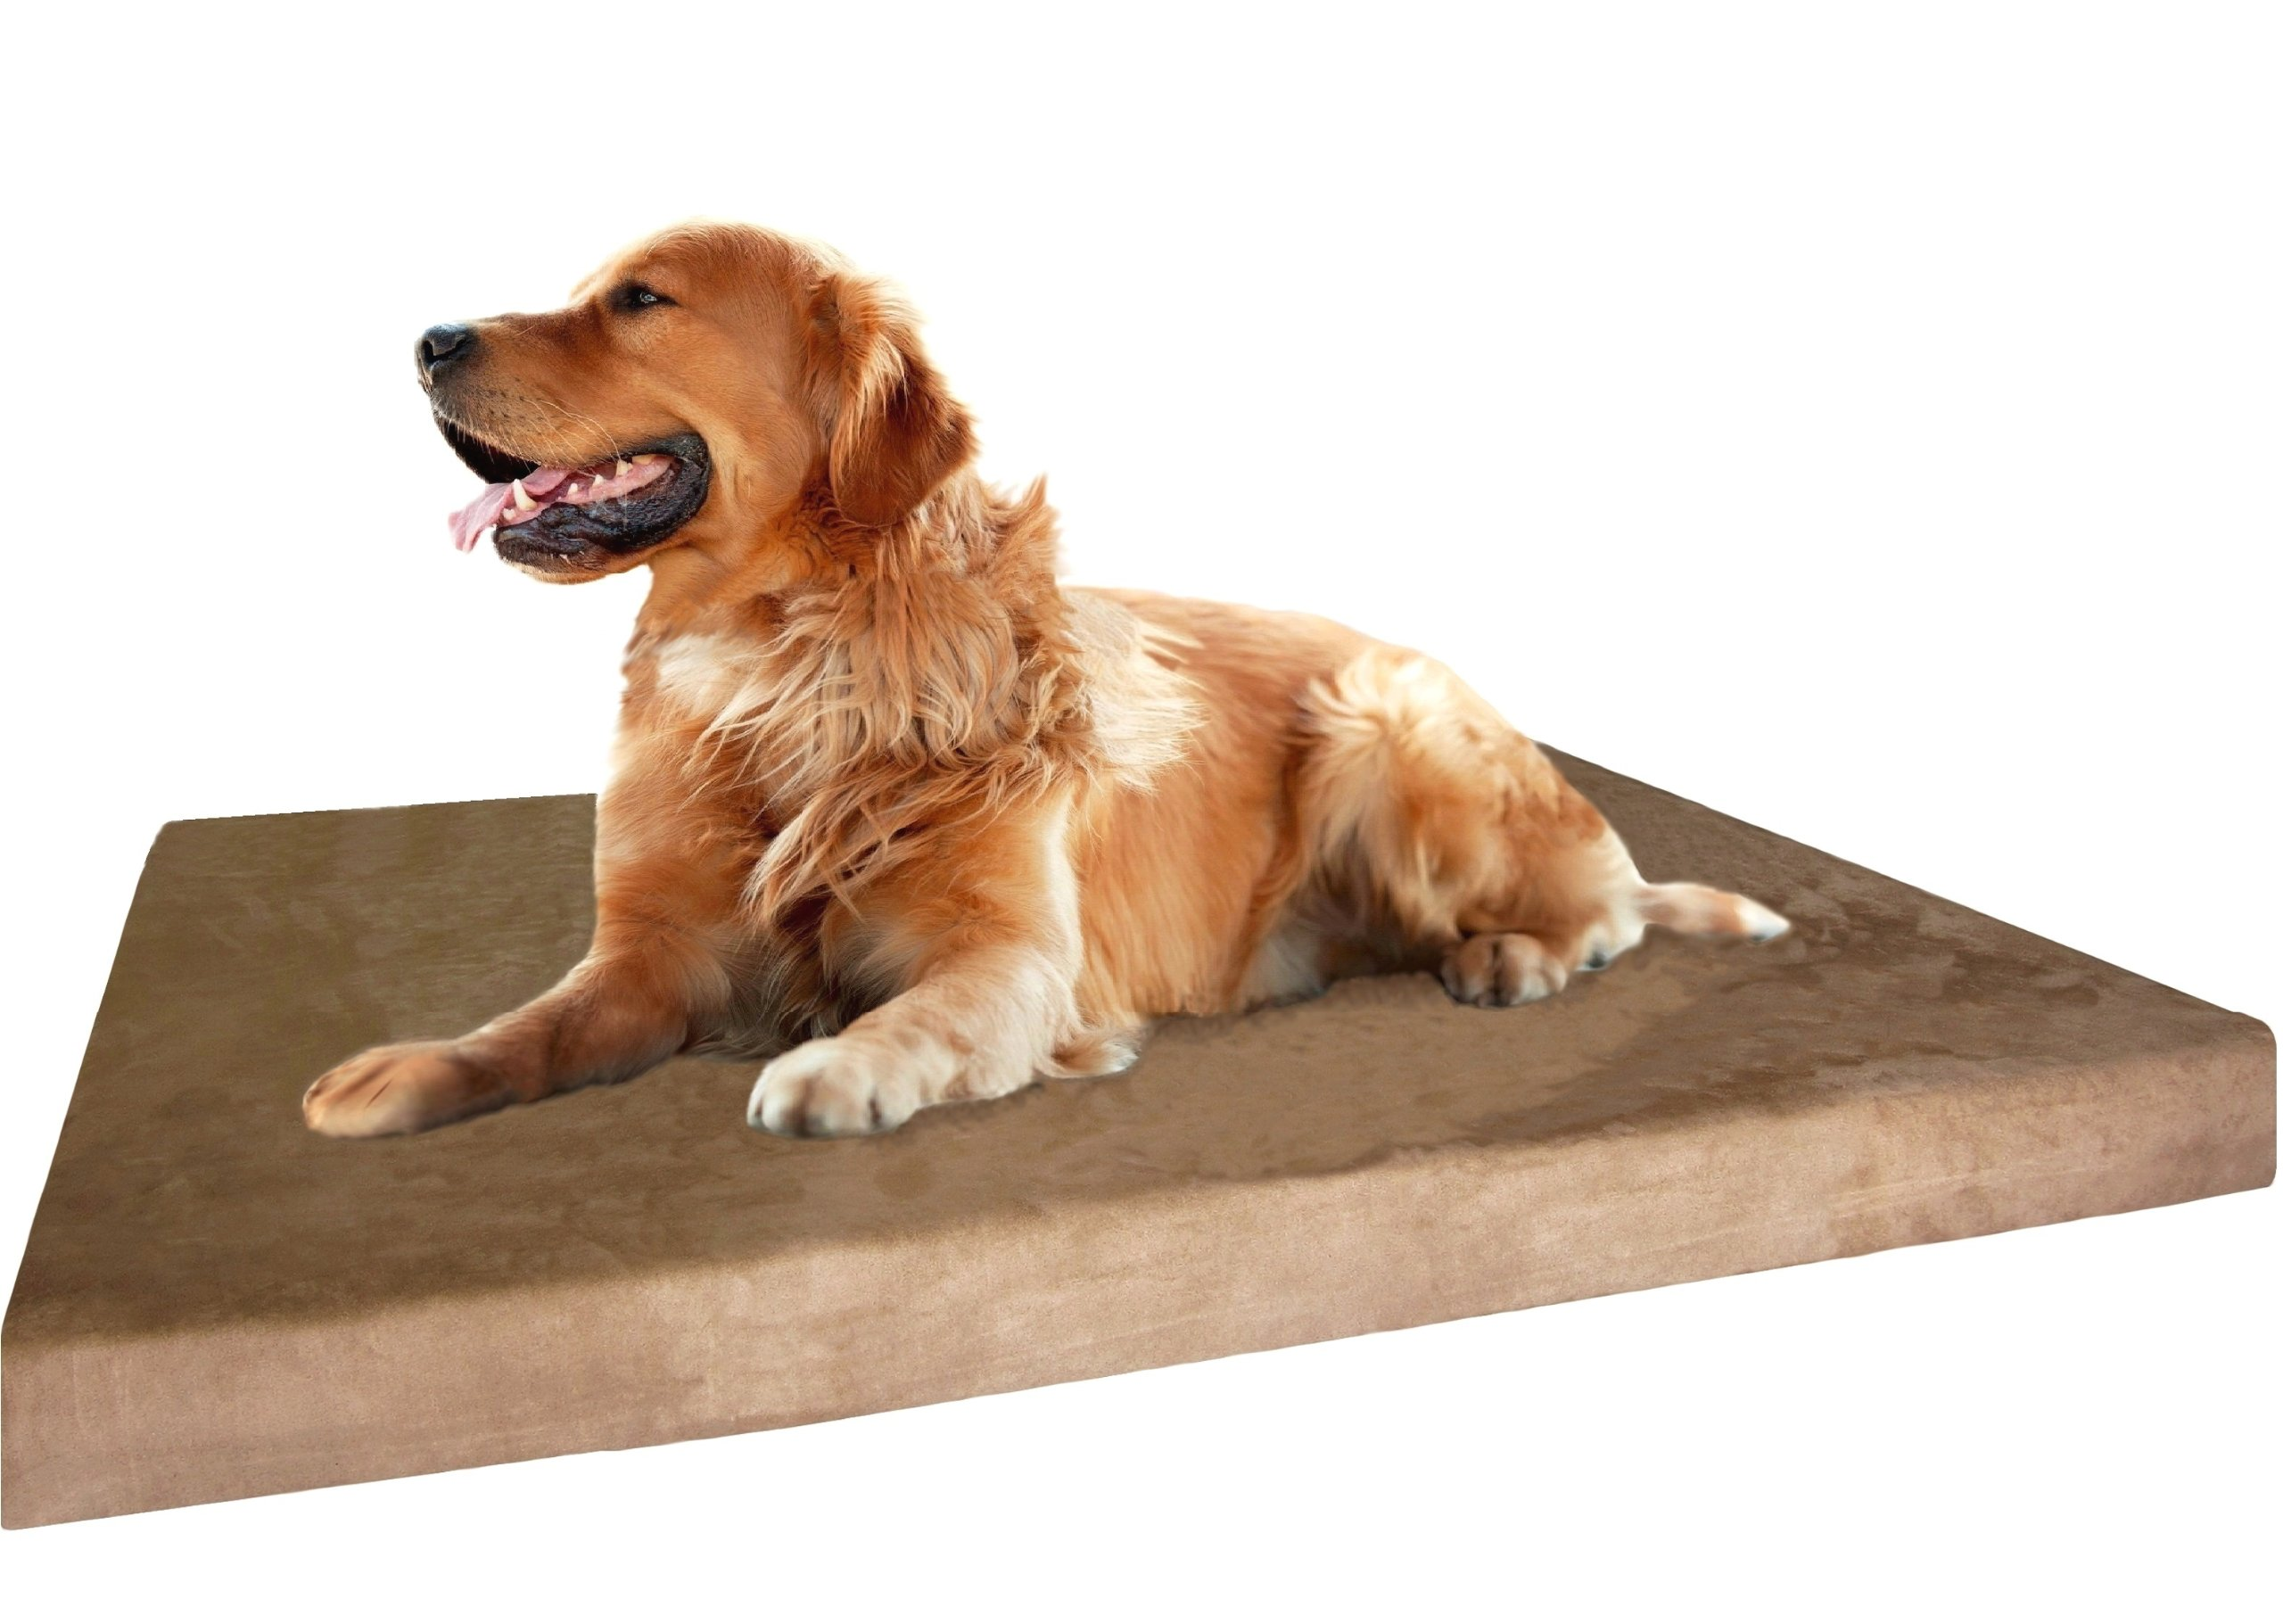 Dogbed4less Premium XL Orthopedic Memory Foam Dog Bed, Waterproof Liner and Extra External Pet Bed Cover, Gel Cooling 47X29X4 Pad Fit 48X30 Crate, Brown